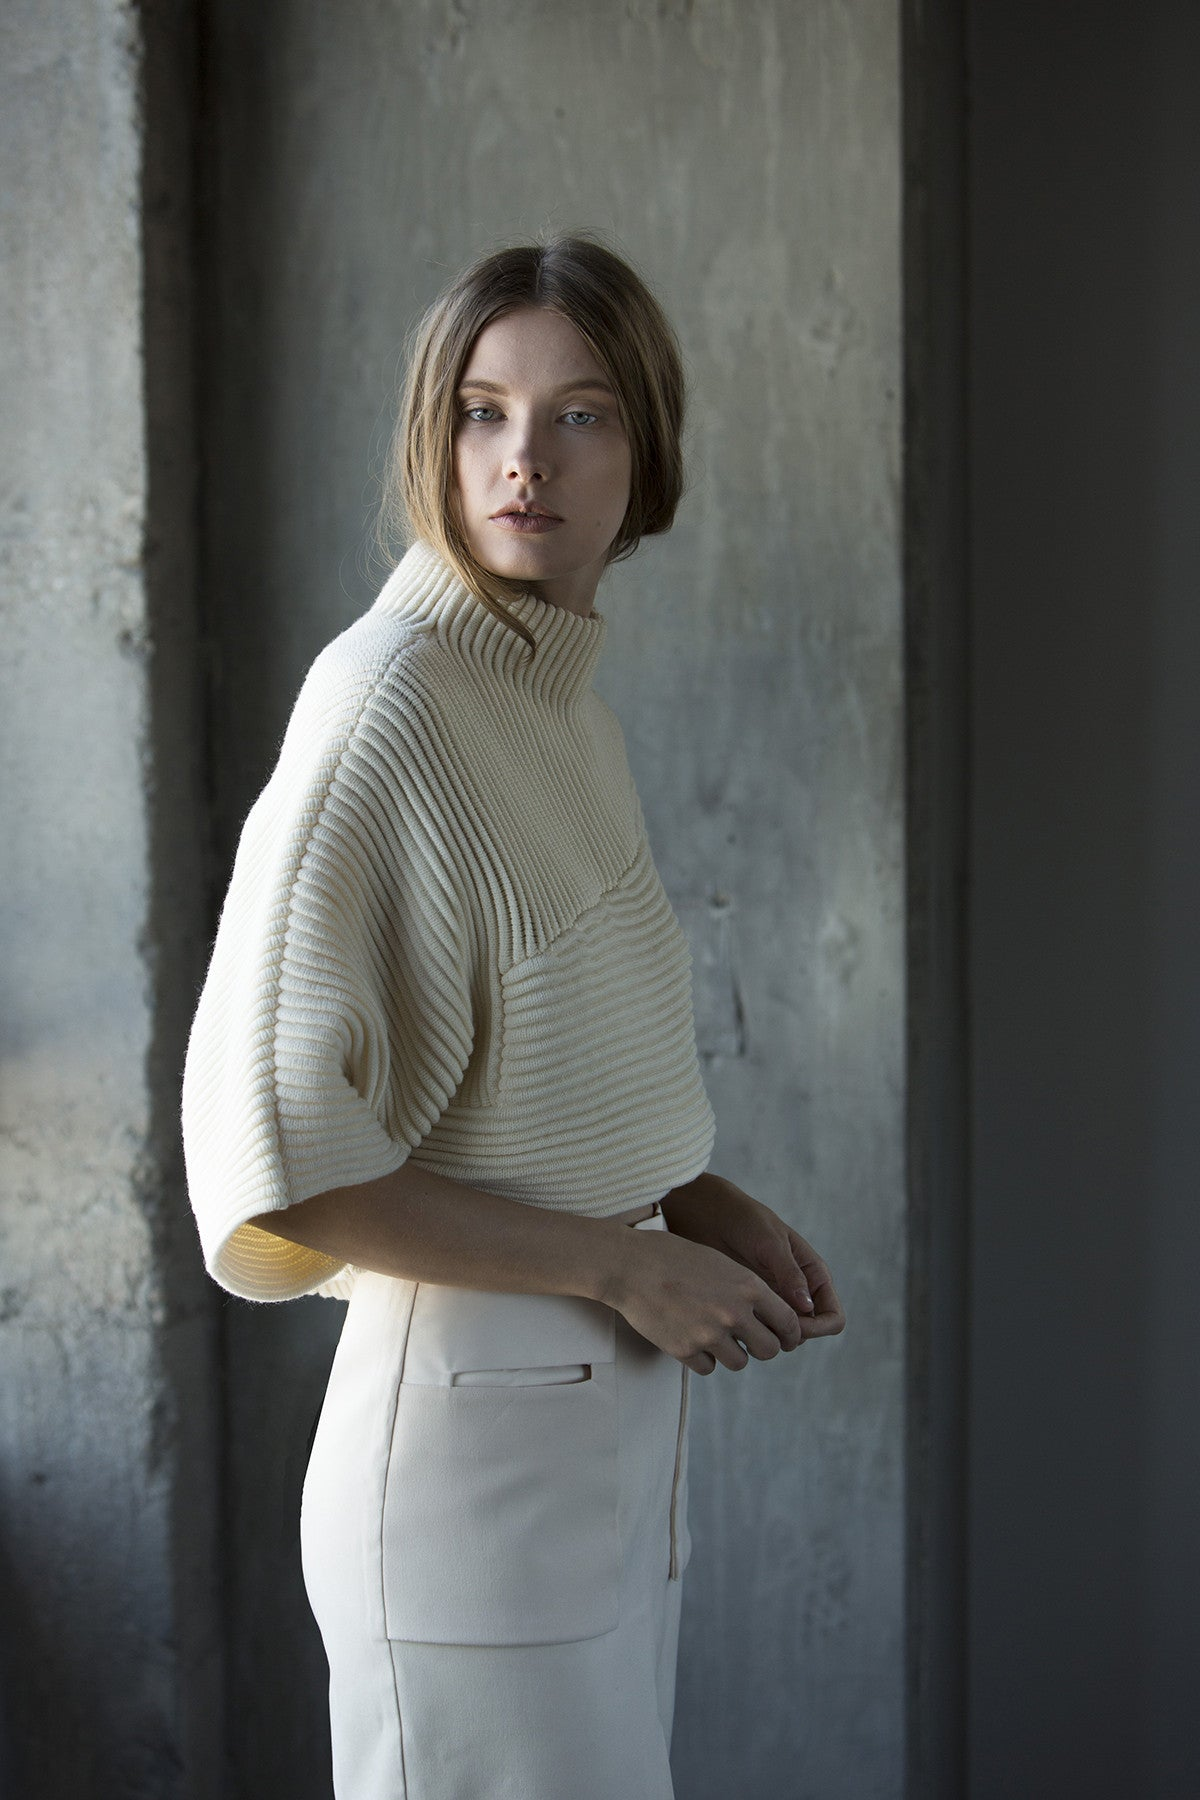 Nicole Sweater in Cream